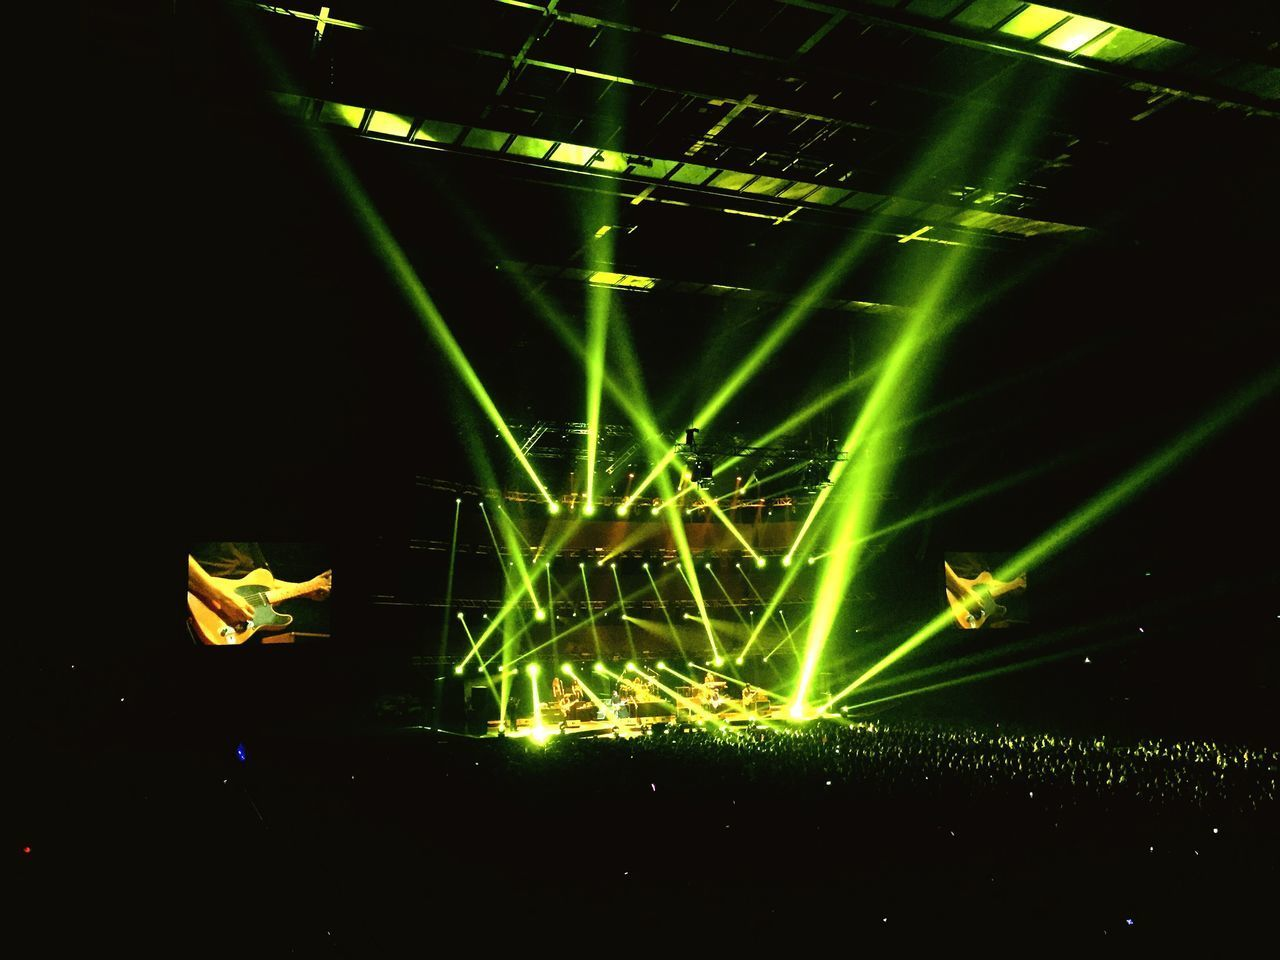 When the lights on Illuminated Arts Culture And Entertainment Green Color Light Beam Concert Life Concert